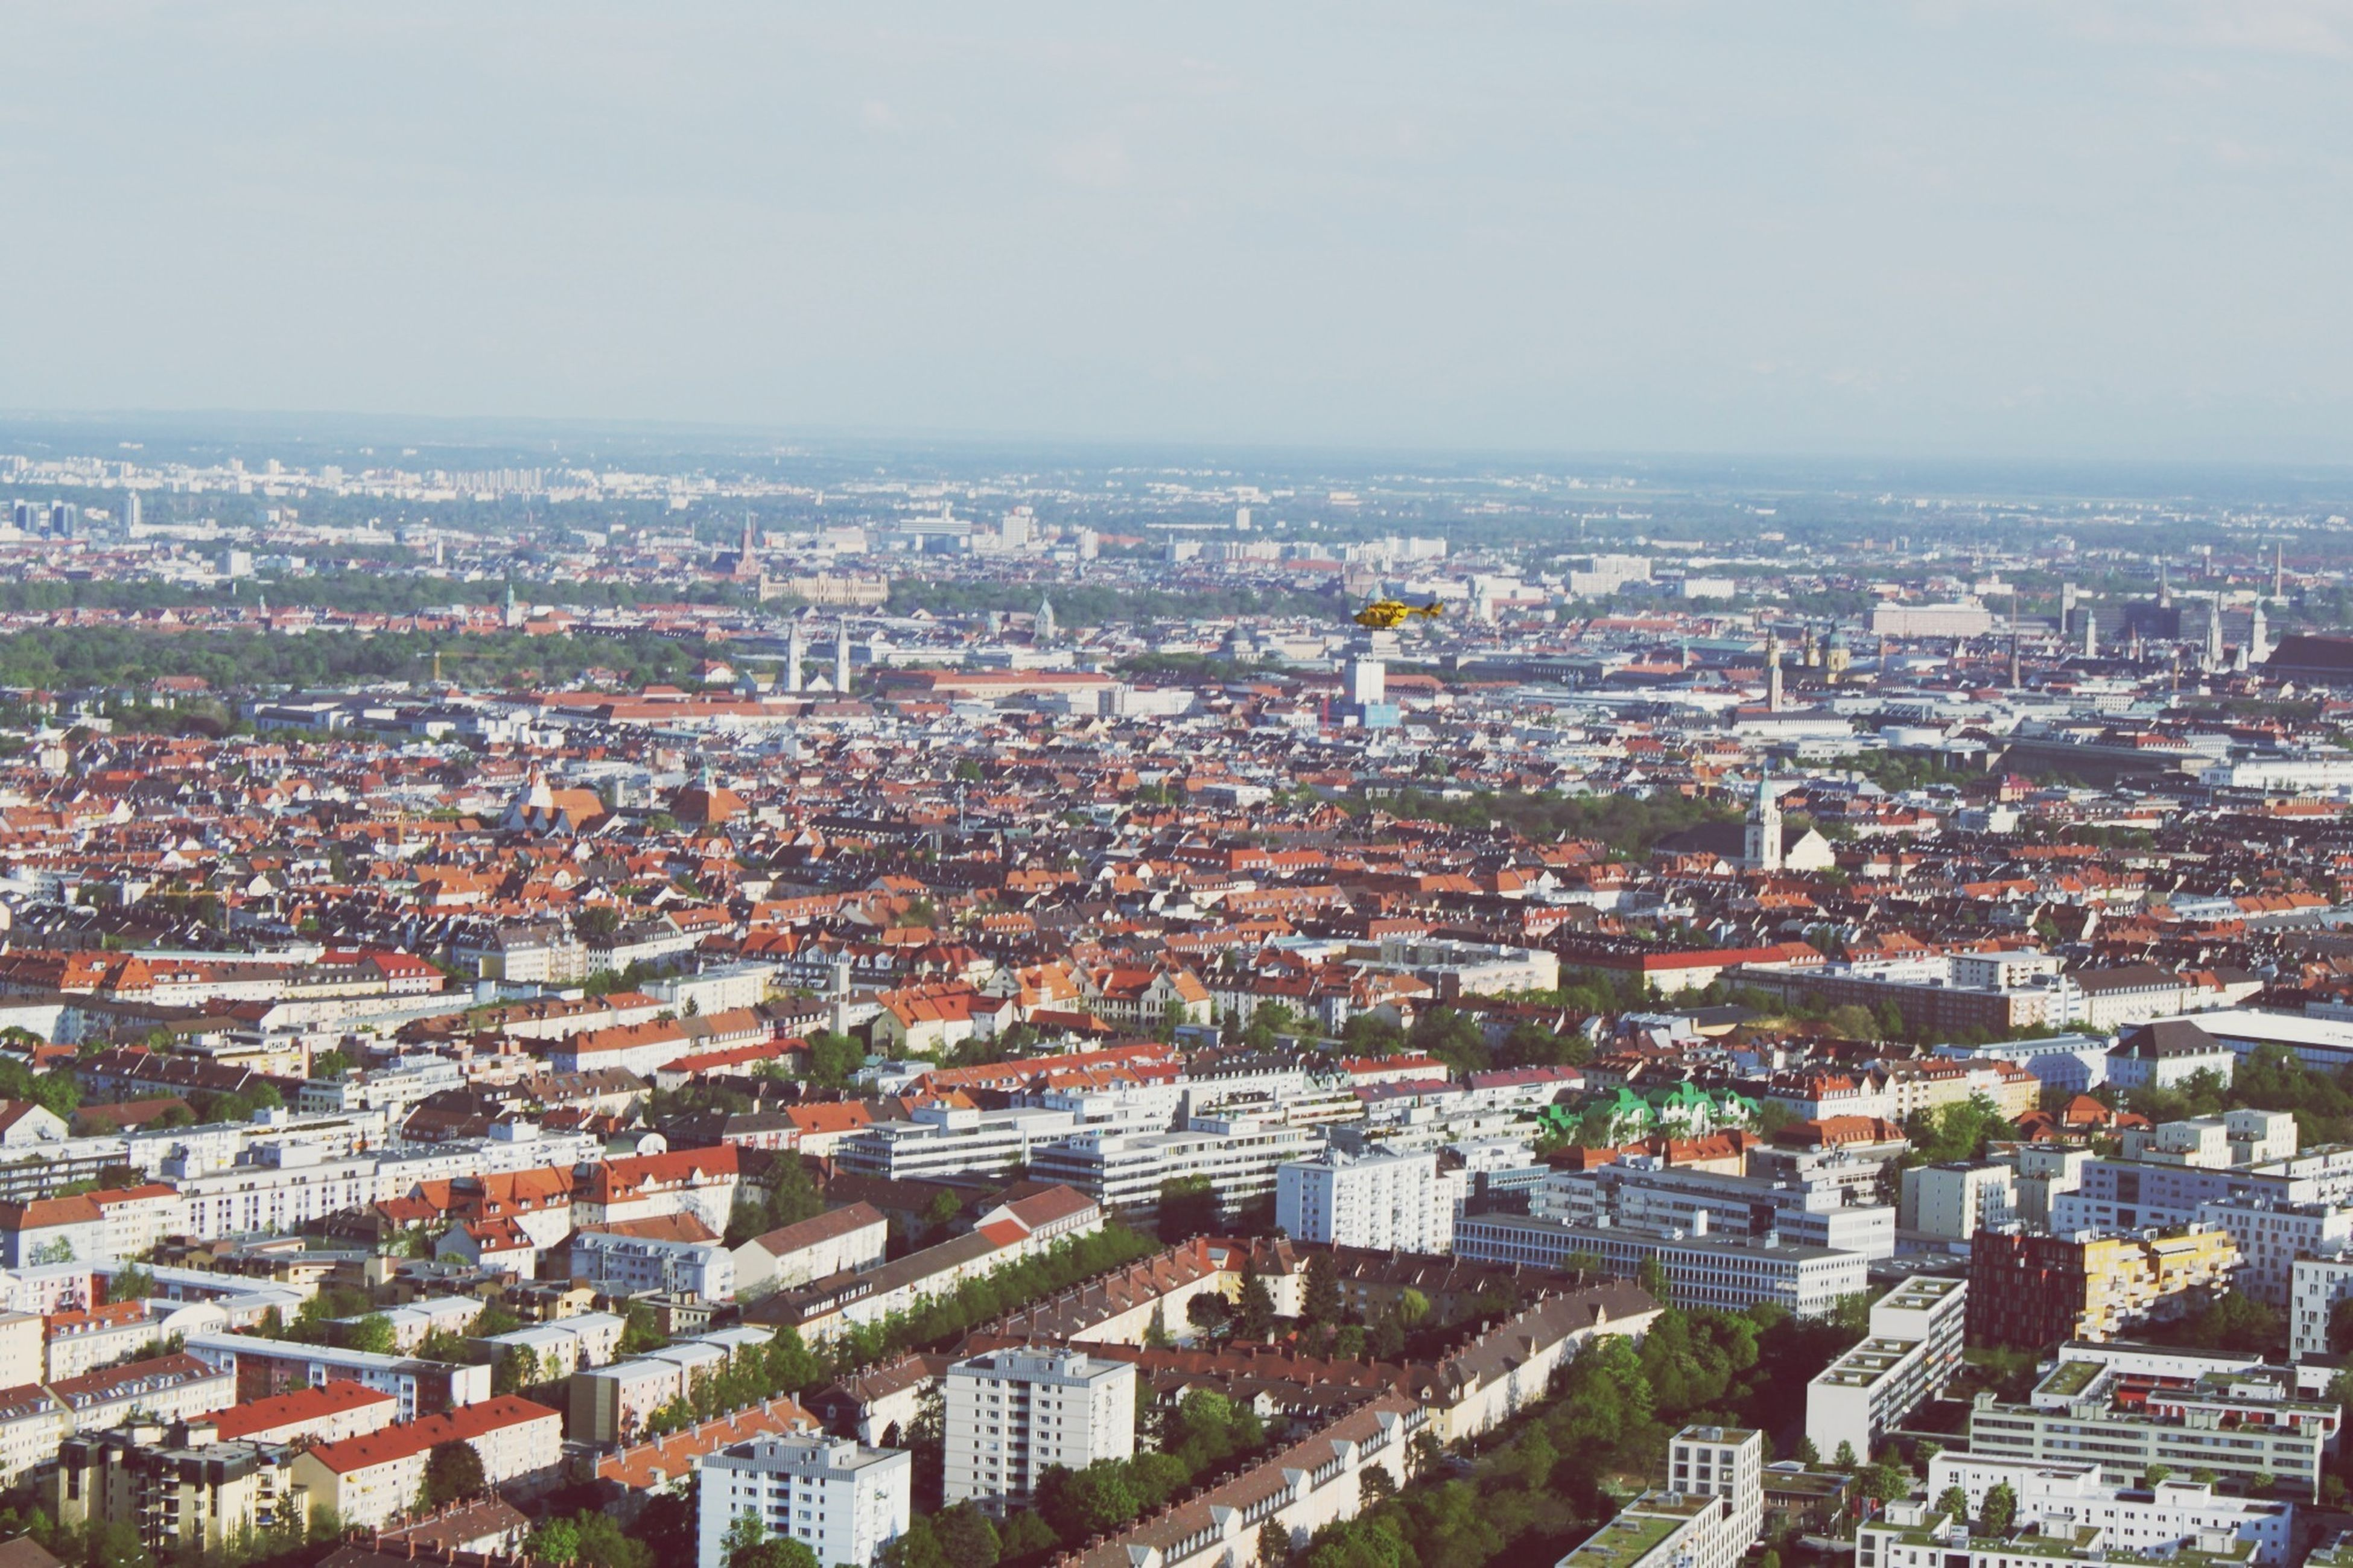 cityscape, city, architecture, building exterior, built structure, crowded, high angle view, aerial view, residential district, sky, tower, skyscraper, residential building, city life, capital cities, residential structure, tall - high, day, modern, no people